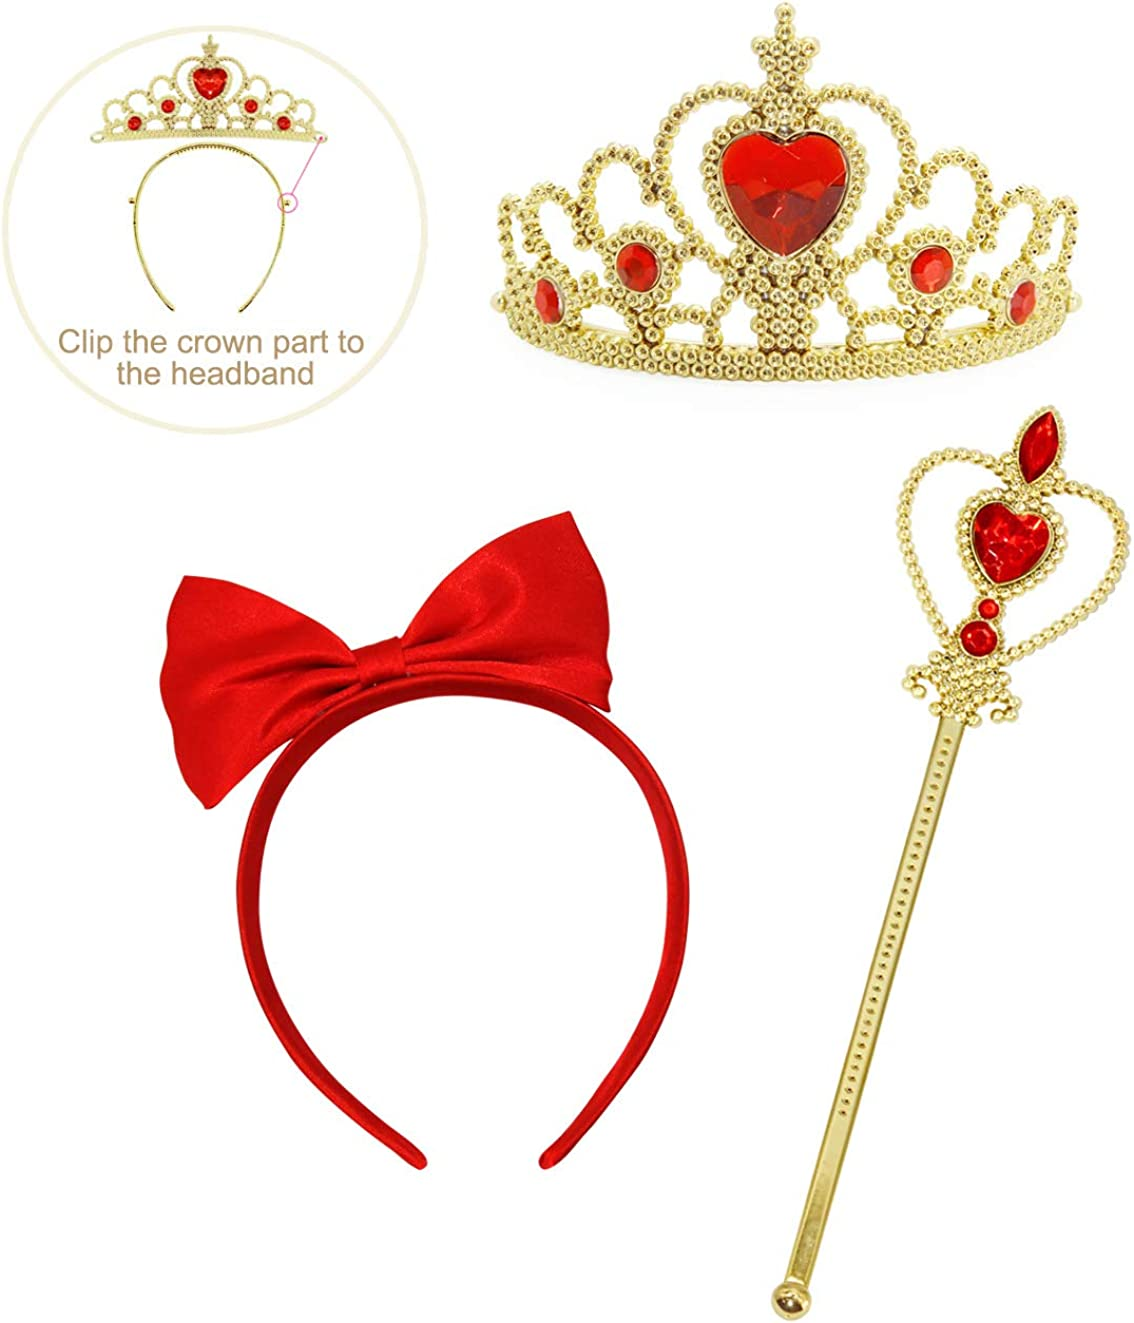 Cotrio Birthday Party Princess Dress Girls Halloween Costume Outfits Toddler Kids Cosplay Clothes with Crown Scepter